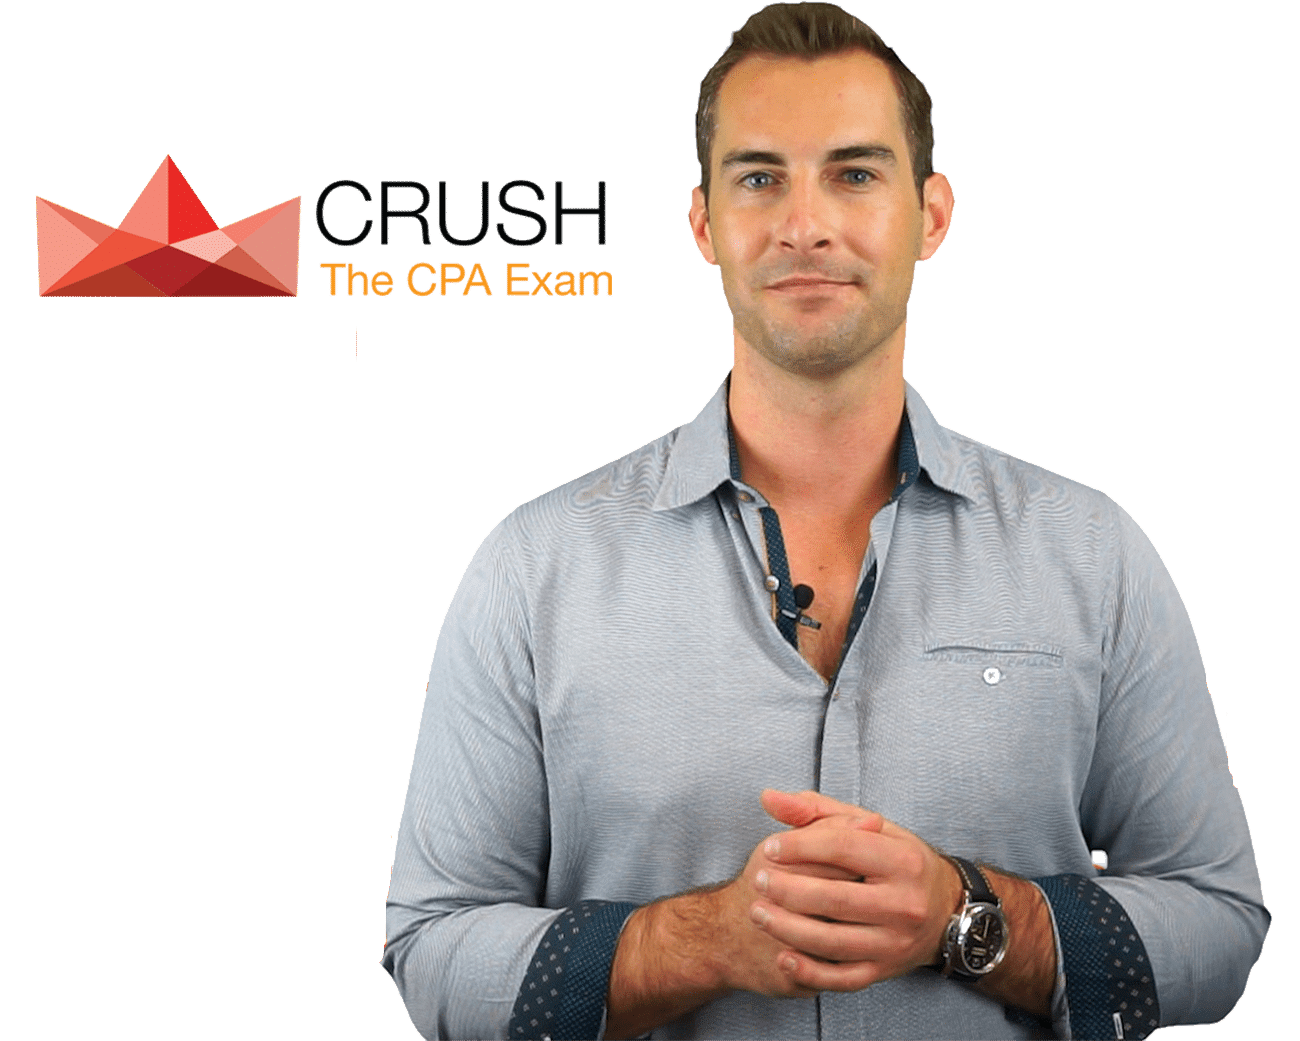 CRUSH The CPA Exam [Pass On Your 1st Try!]